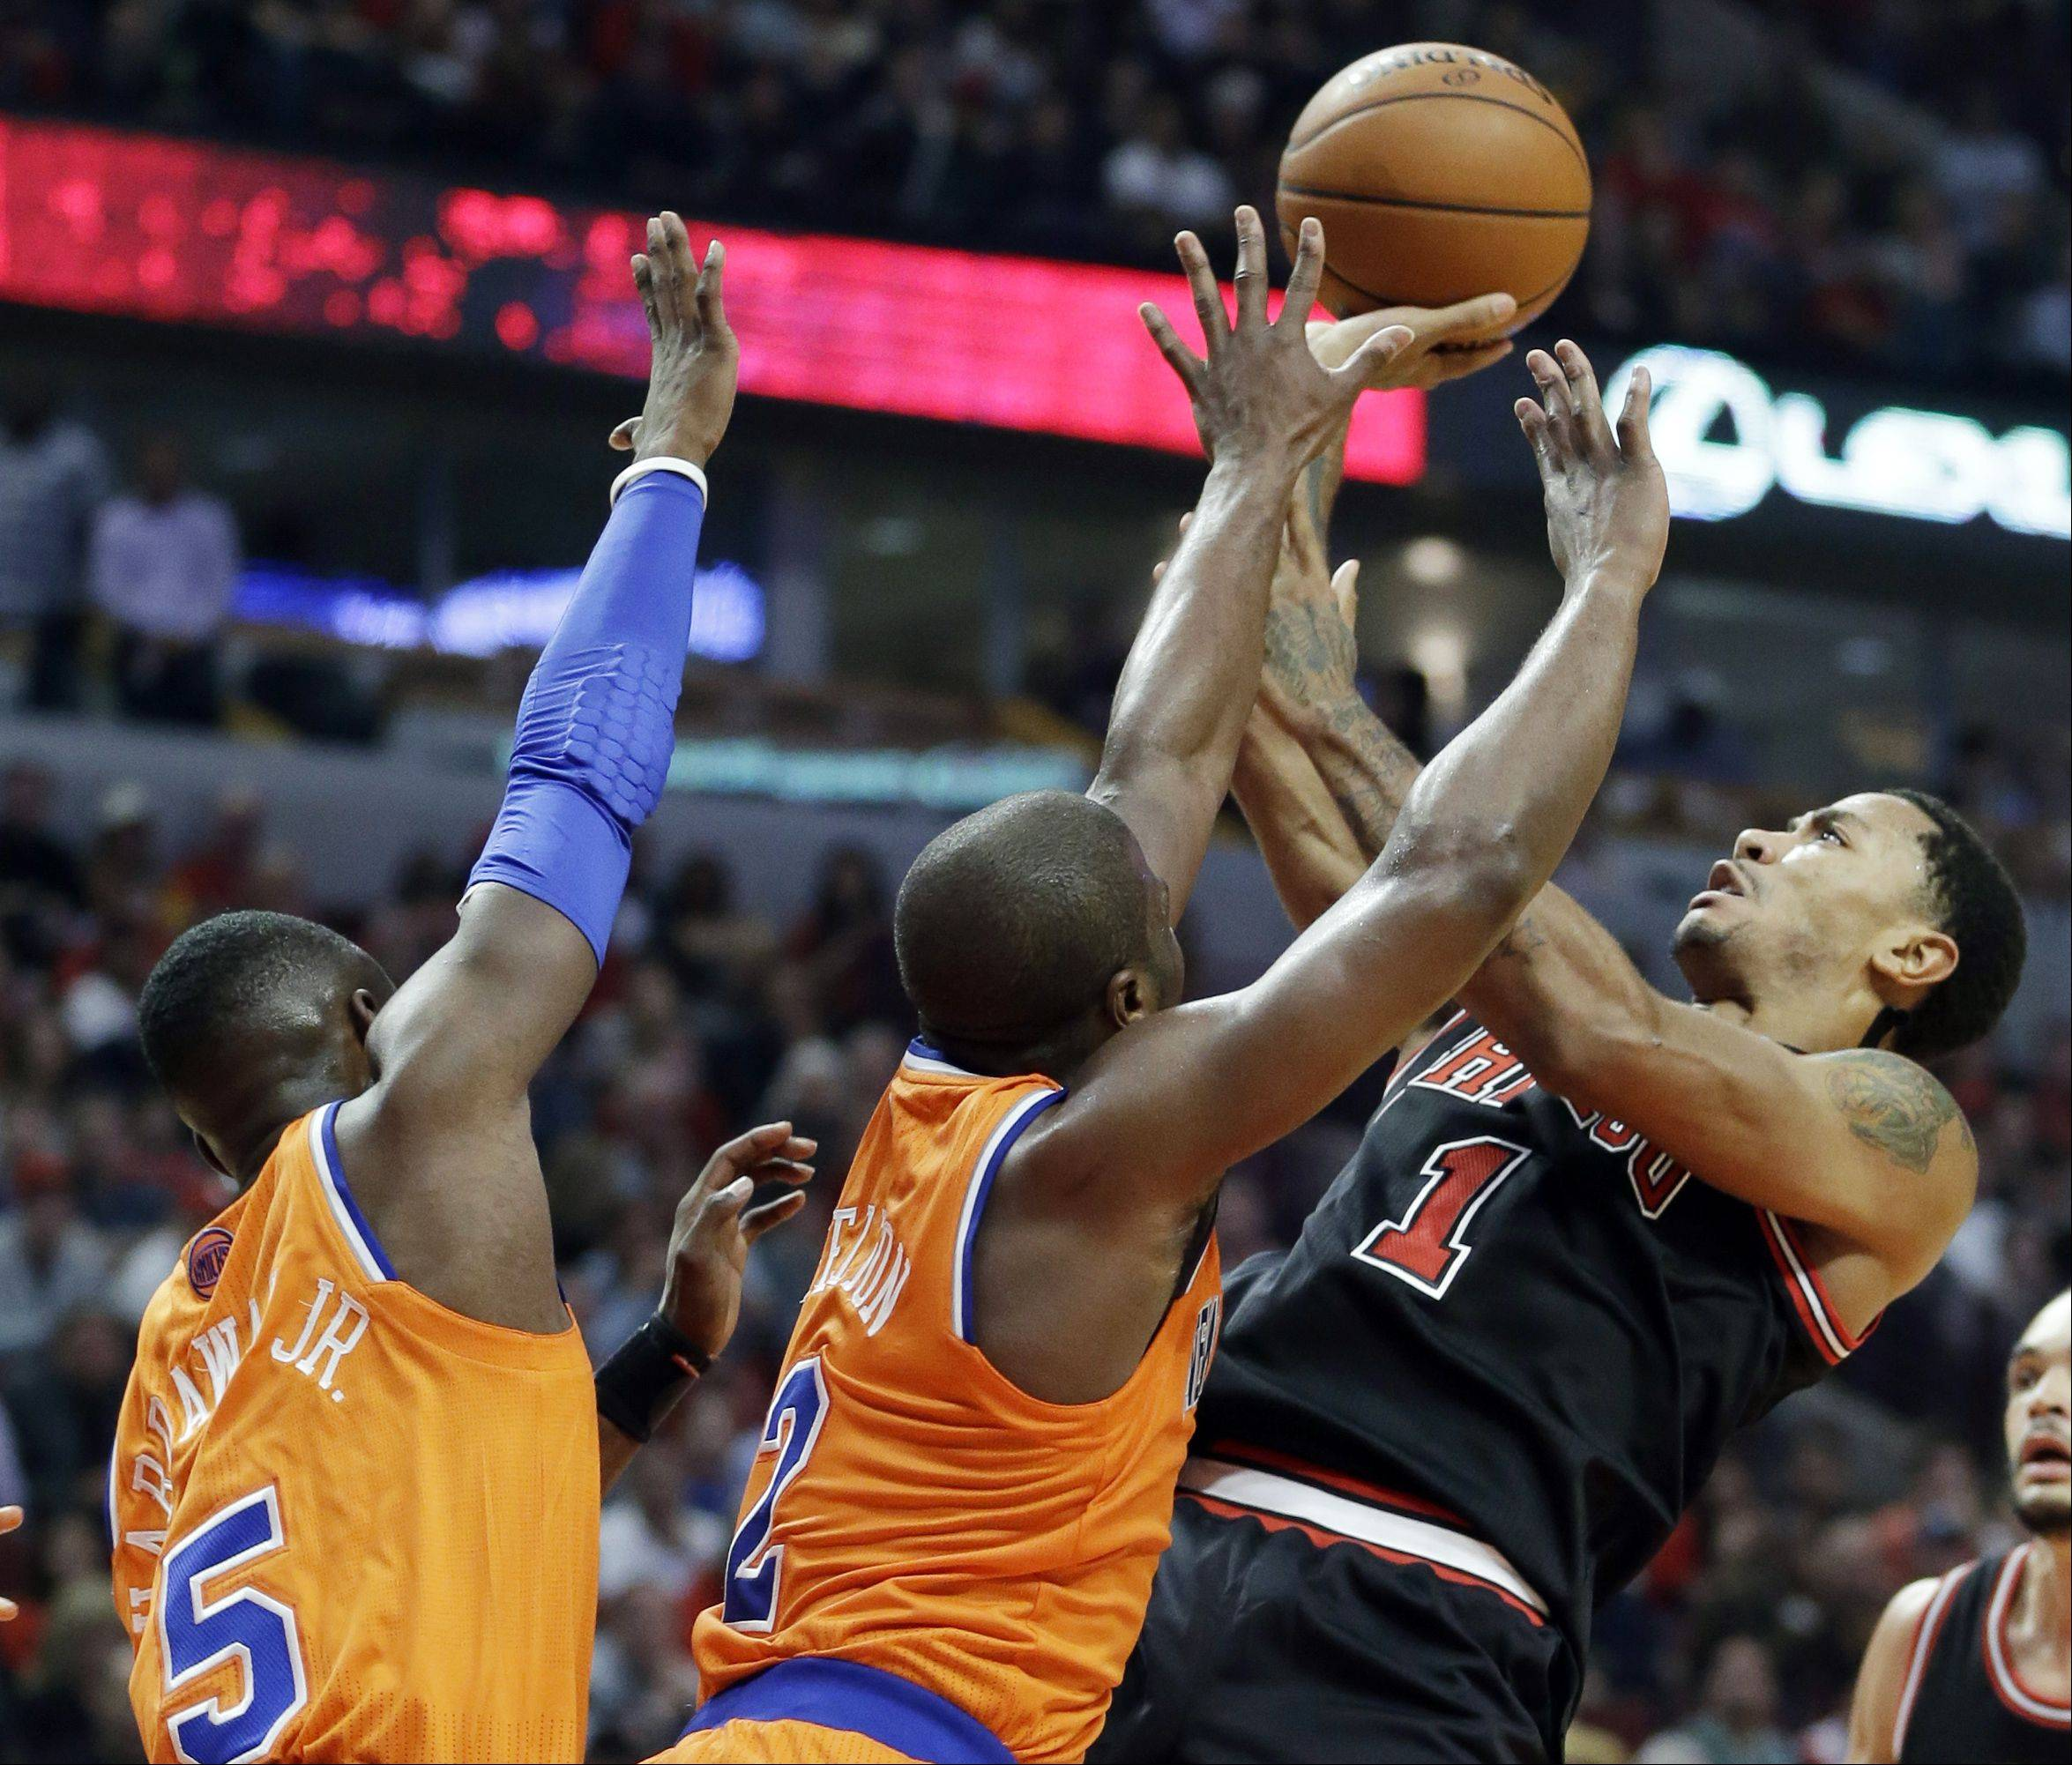 Chicago Bulls guard Derrick Rose (1) shoots over New York Knicks guard Raymond Felton (2) and guard Tim Hardaway Jr during the second half of an NBA basketball game in Chicago,